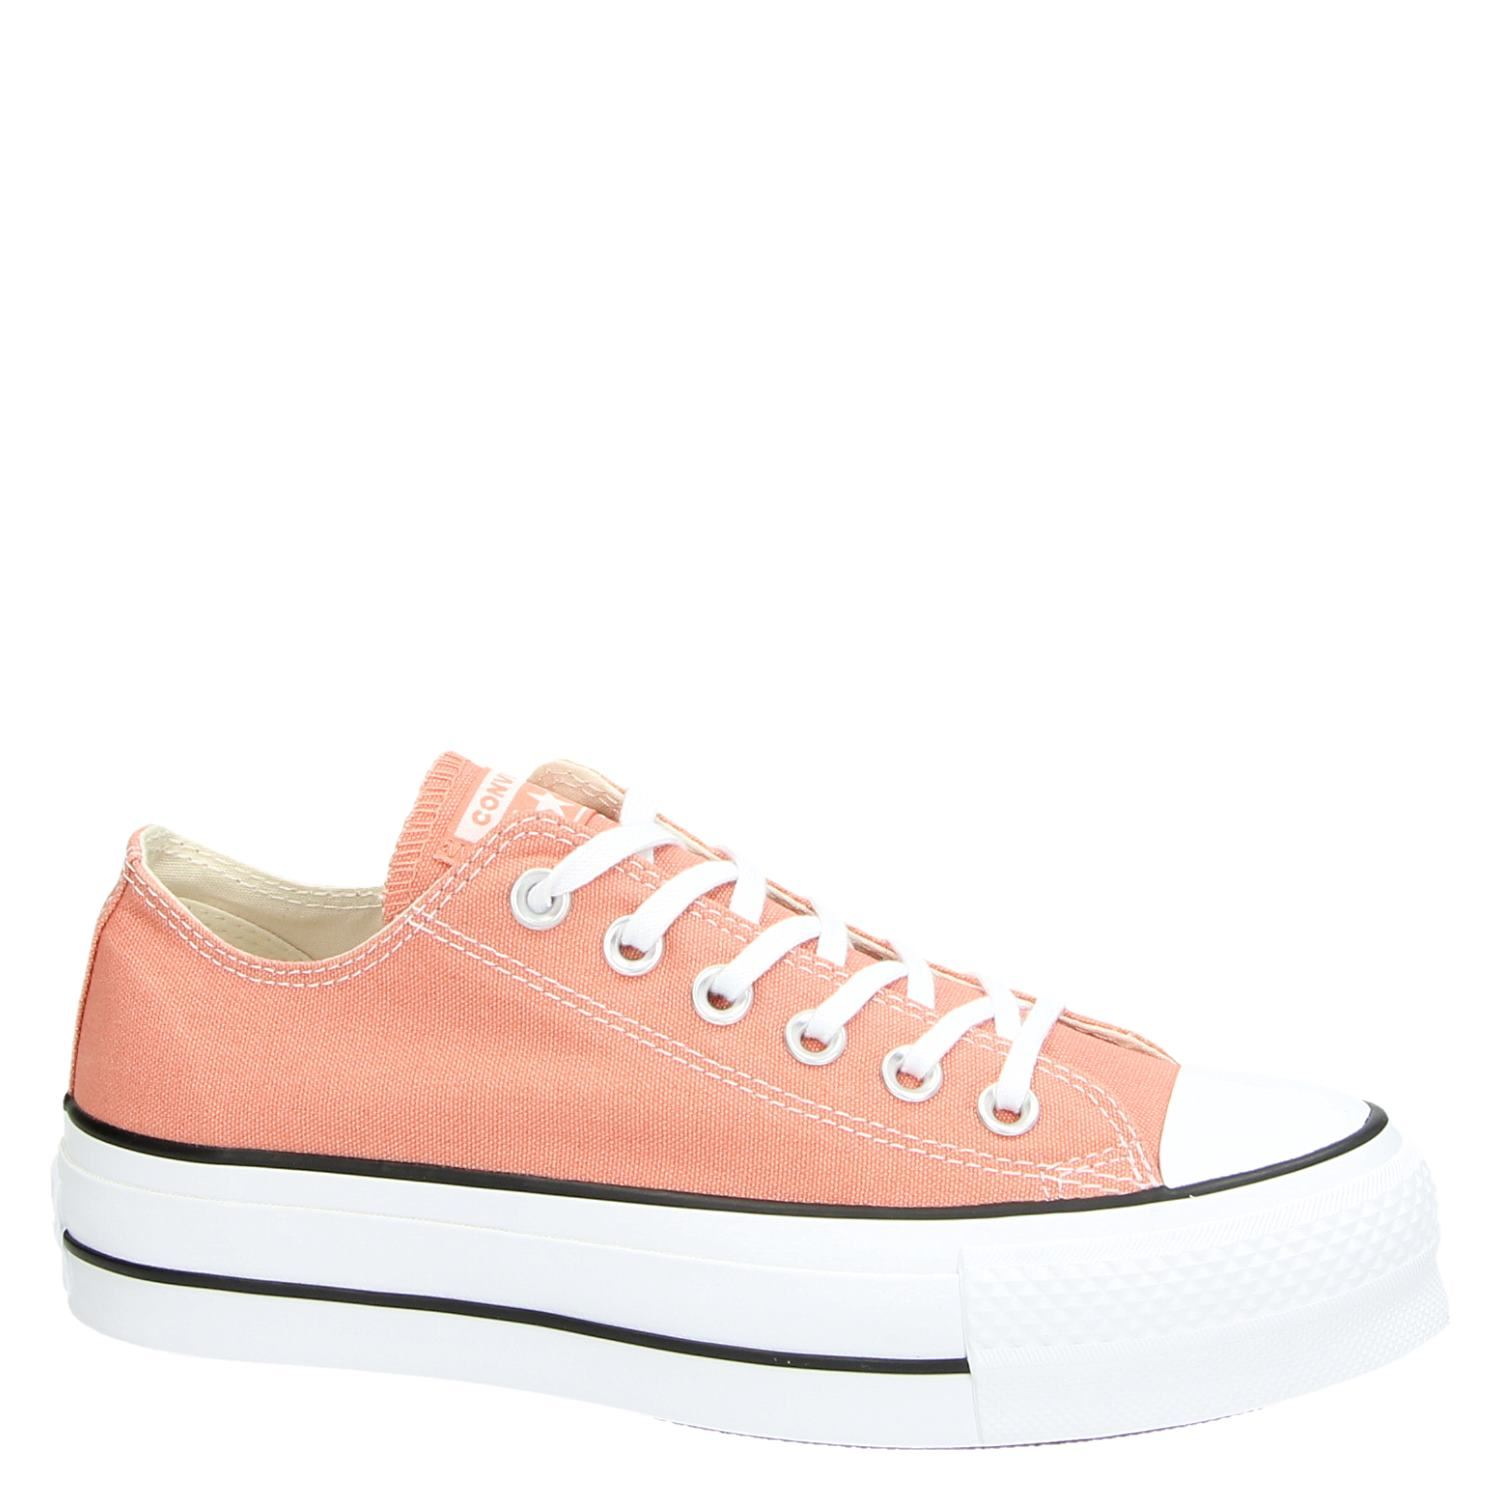 Converse Chuck Taylor All Star Lift dames platform sneakers roze